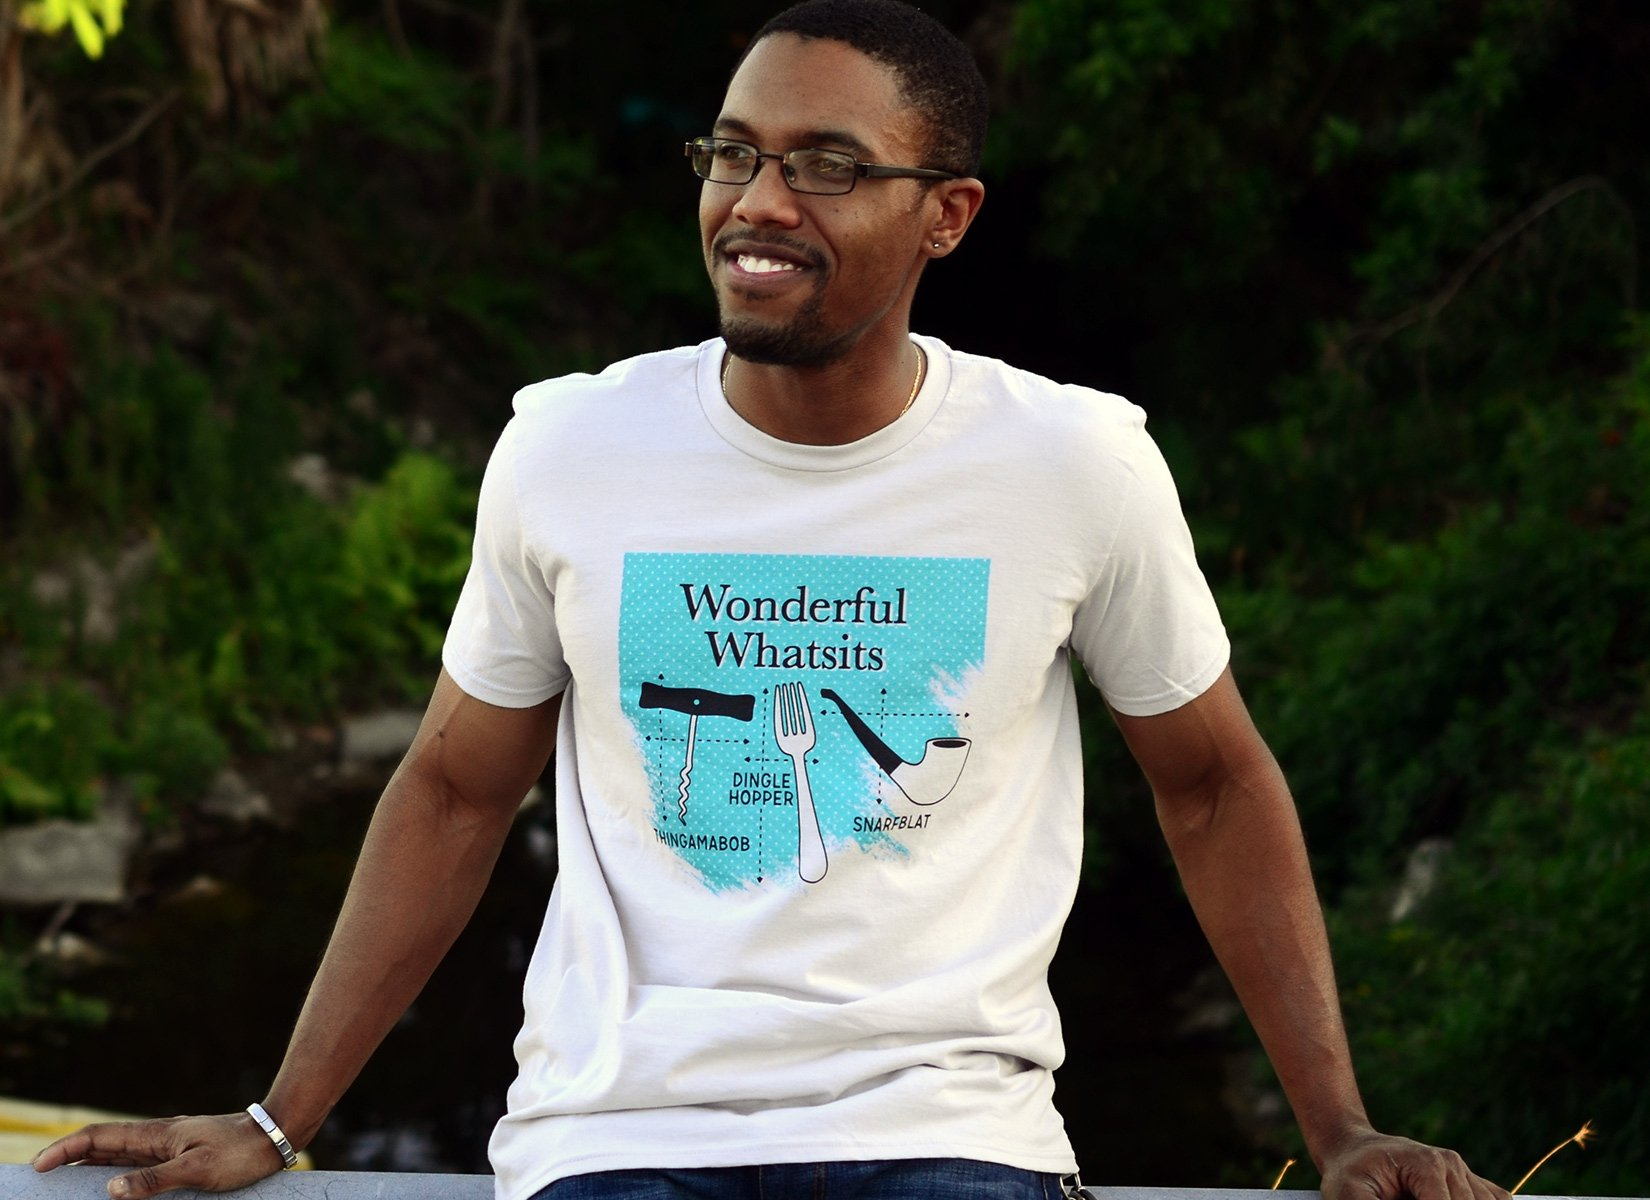 Wonderful Whatsits on Mens T-Shirt